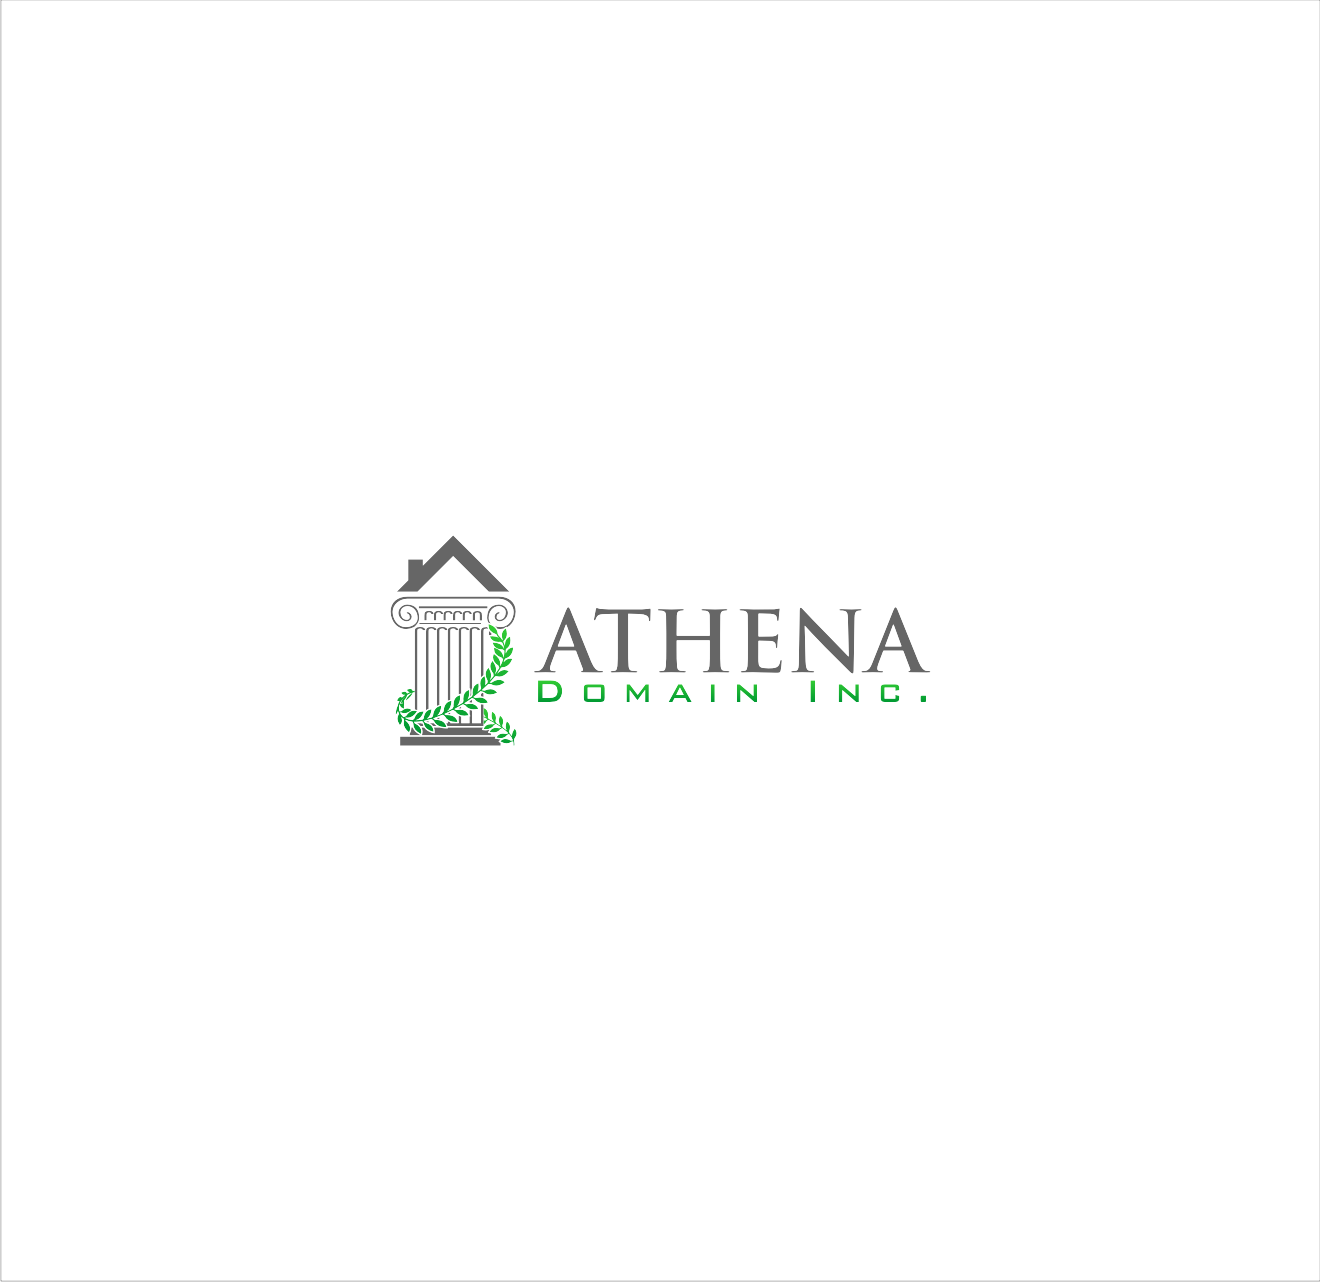 logo for Athena Domain, Inc.